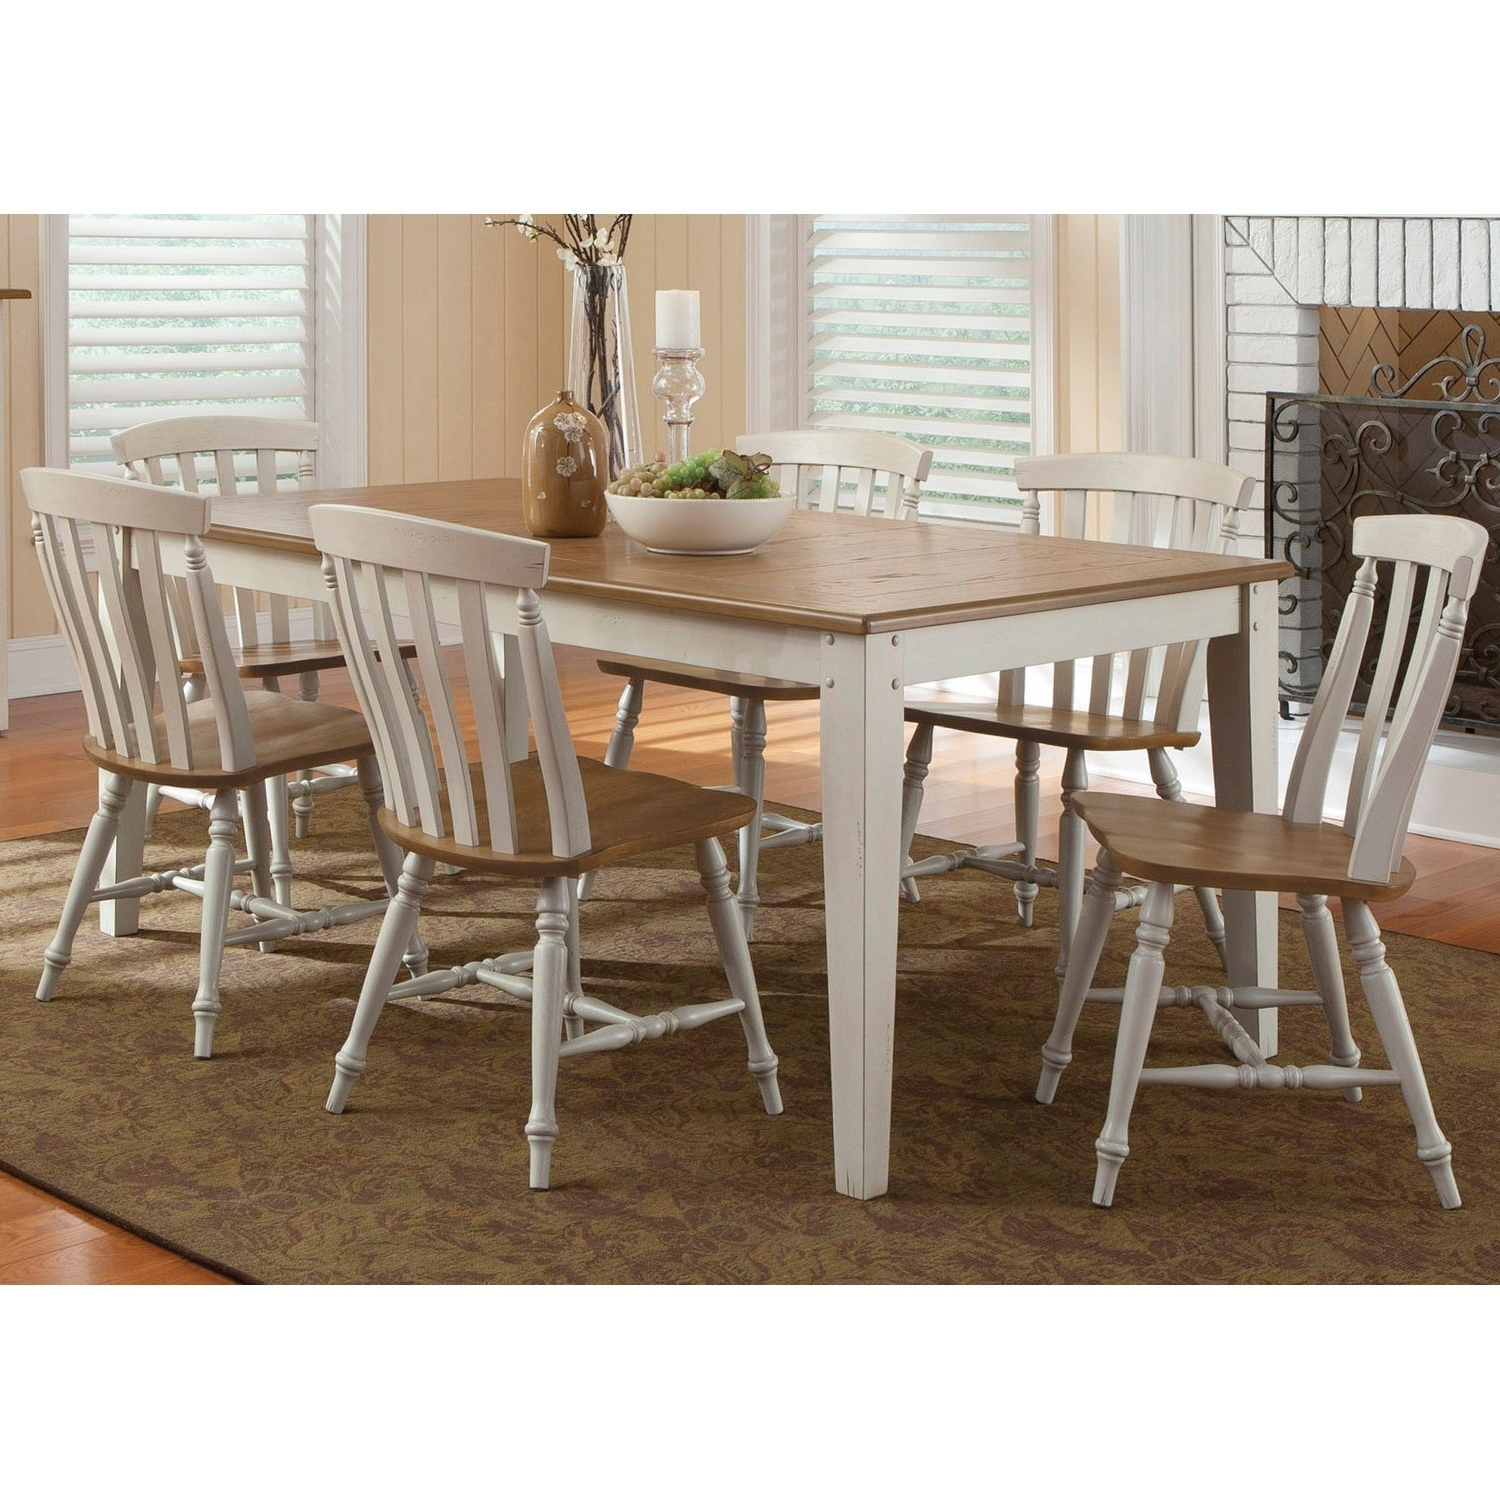 Buy Oak, 7 Piece Sets Kitchen & Dining Room Sets Online At Overstock With Popular Goodman 5 Piece Solid Wood Dining Sets (Set Of 5) (View 2 of 20)